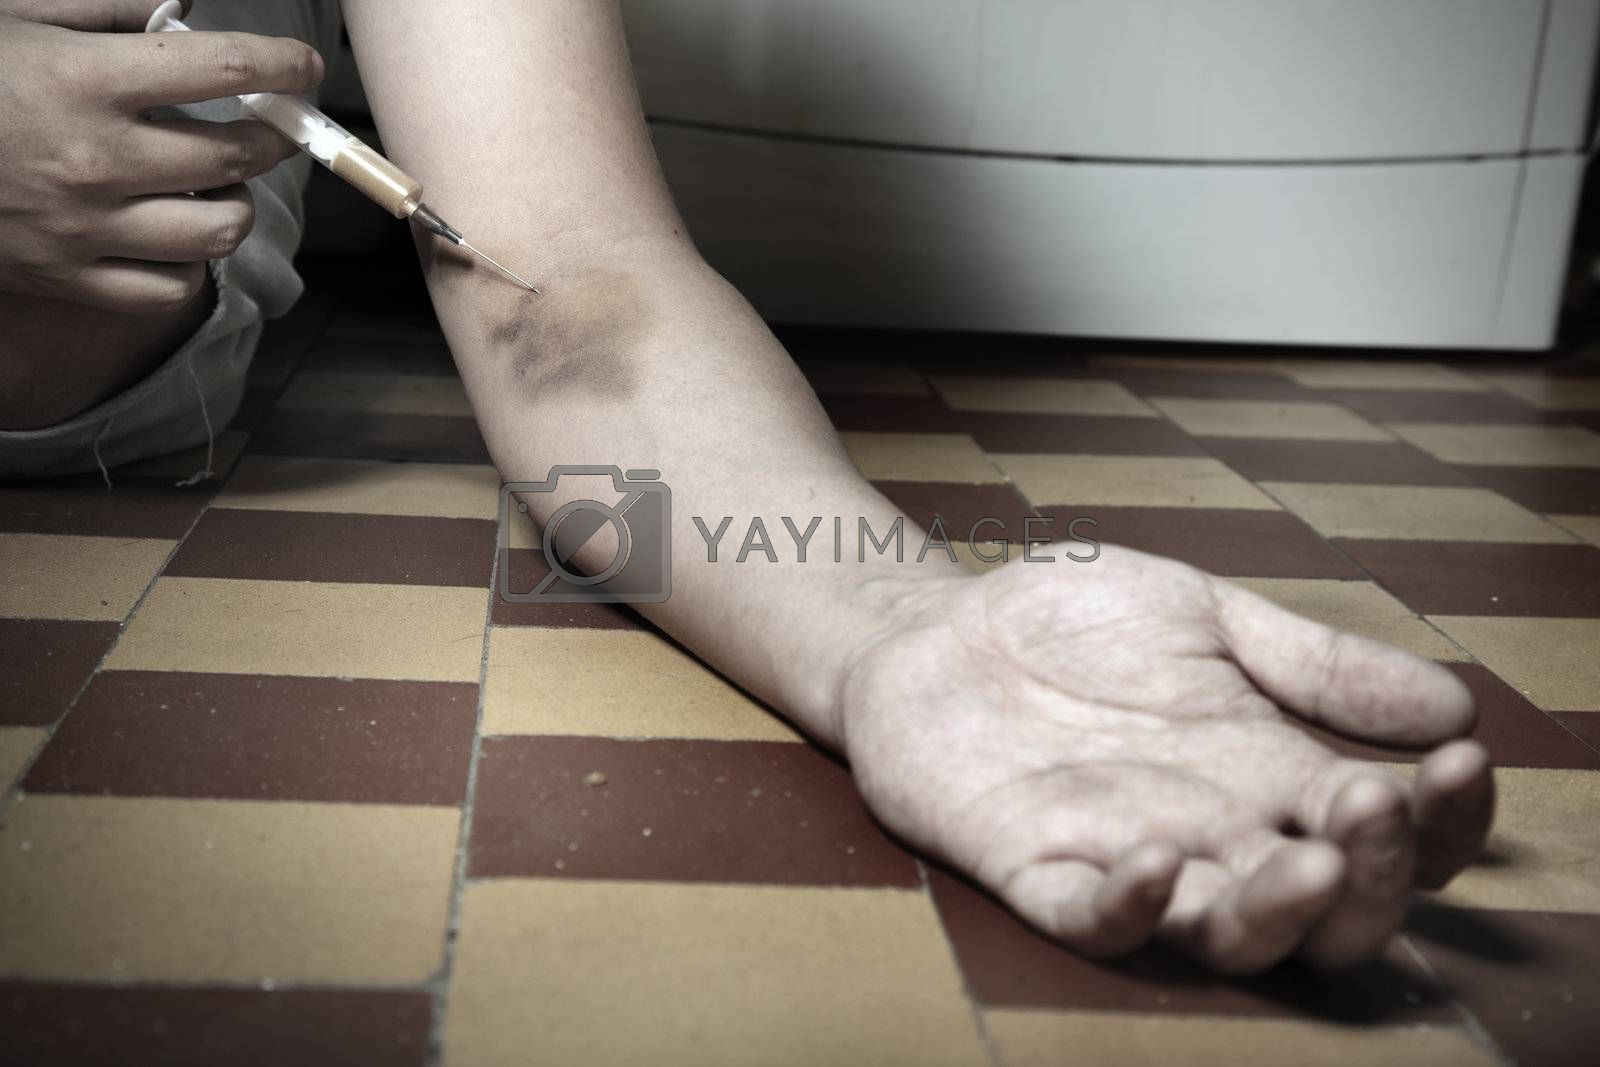 Hand of the narcotist with syringe on the floor. Artistic colors added